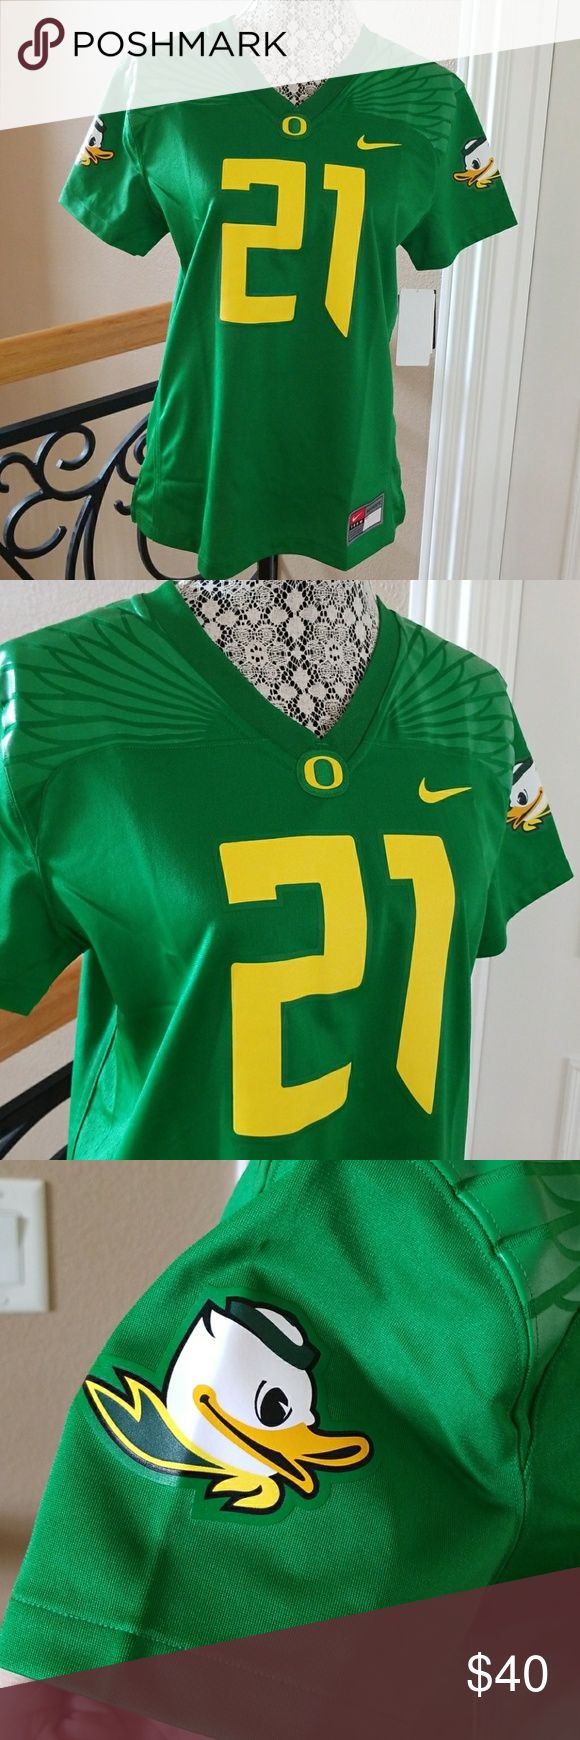 """NWT Nike Oregon Ducks game day jersey Brand new with tags ladies University of Oregon Ducks game day jersey. V neck with Oregon Duck on both shirt sleeves. Split side seams. Measures 25"""" shoulder to hem. Size small. Nike Tops Tees - Short Sleeve"""